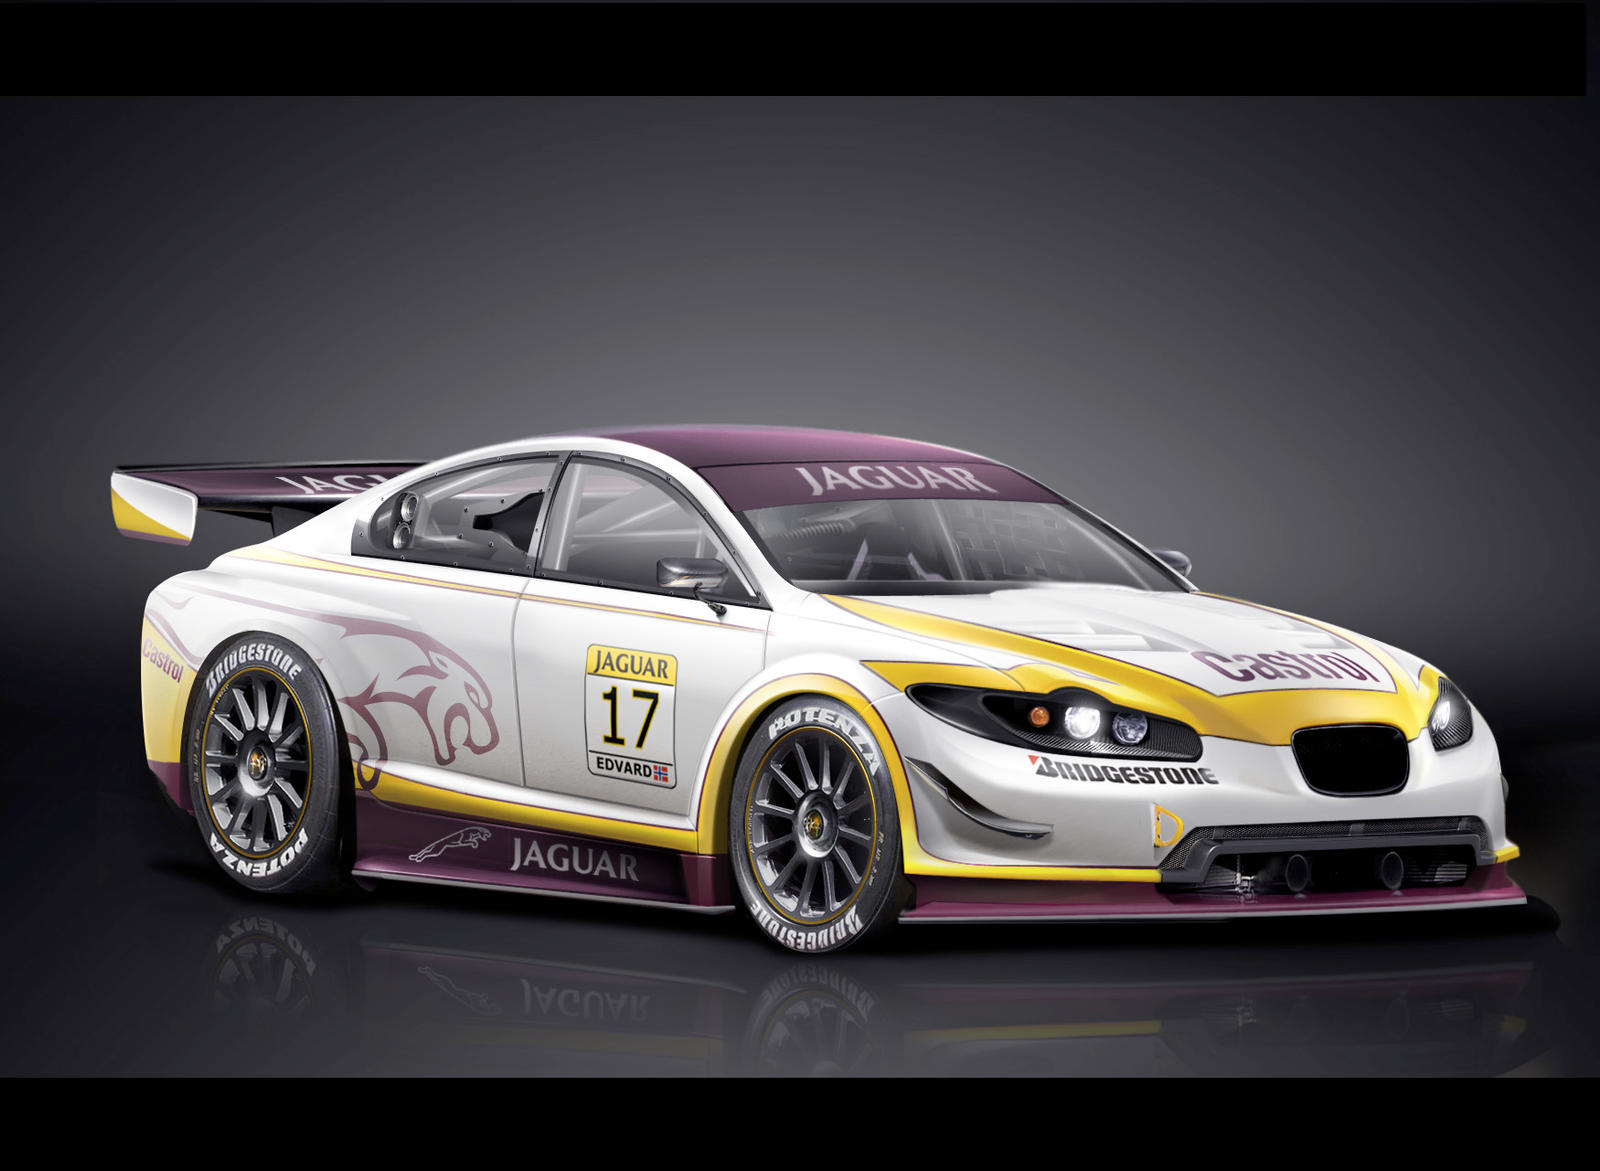 Jaguar Xf Racecar By Dr Phoenix On Deviantart